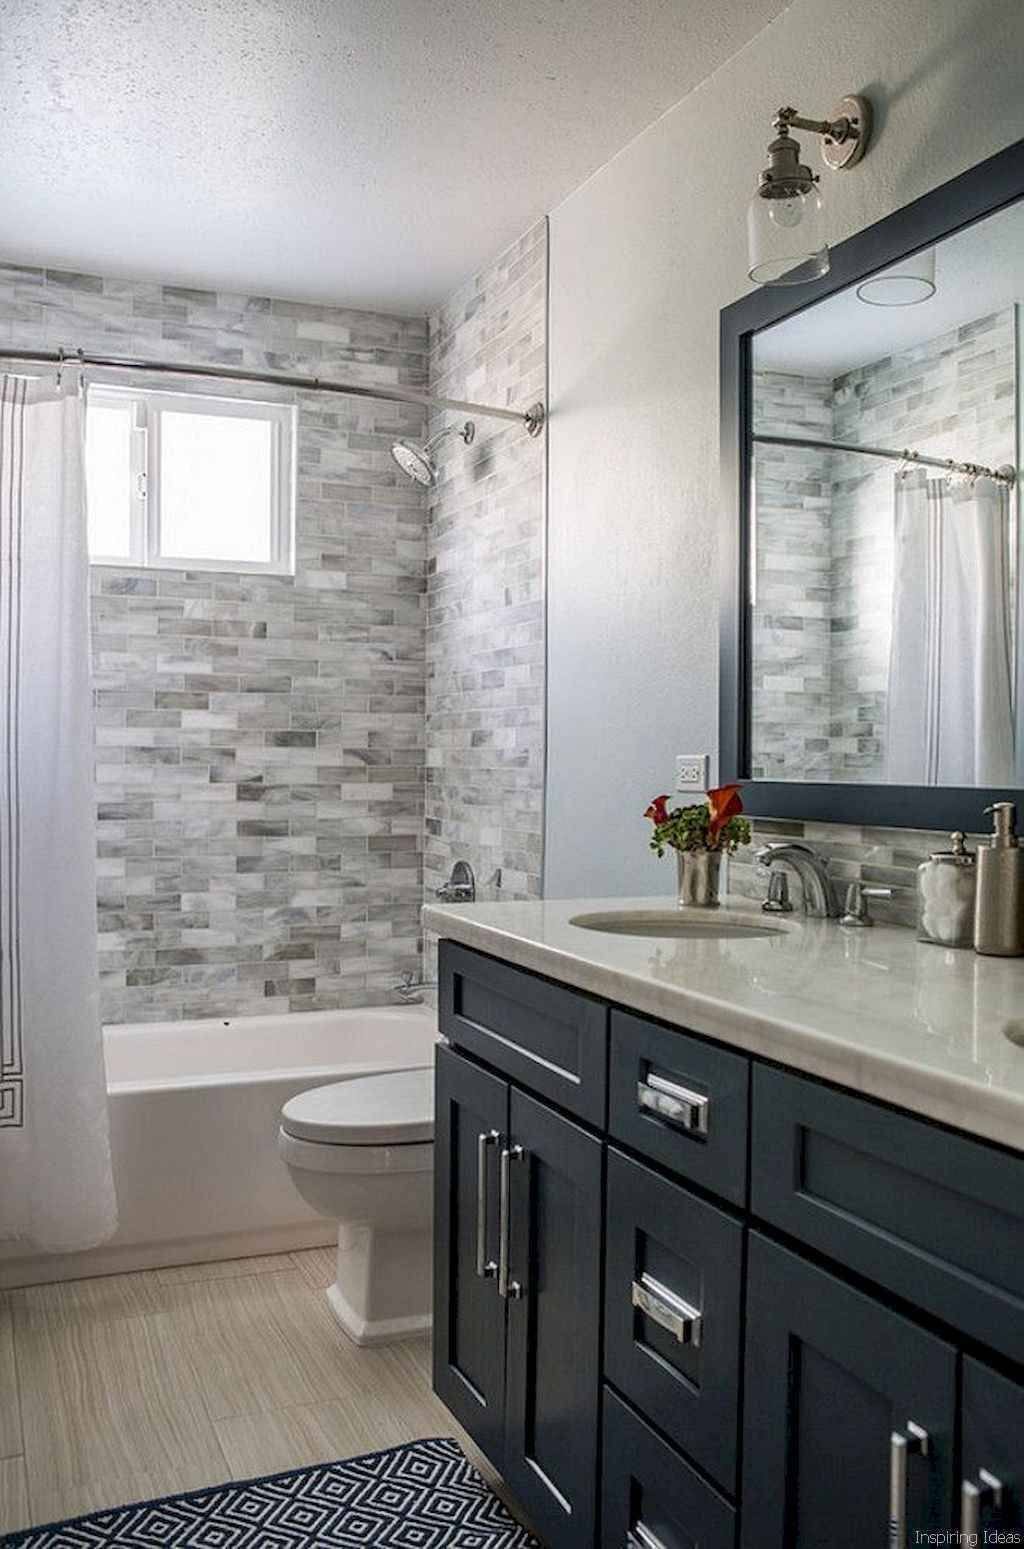 76 Genius Small Bathroom Makeover Ideas in 2020 | Gray ...